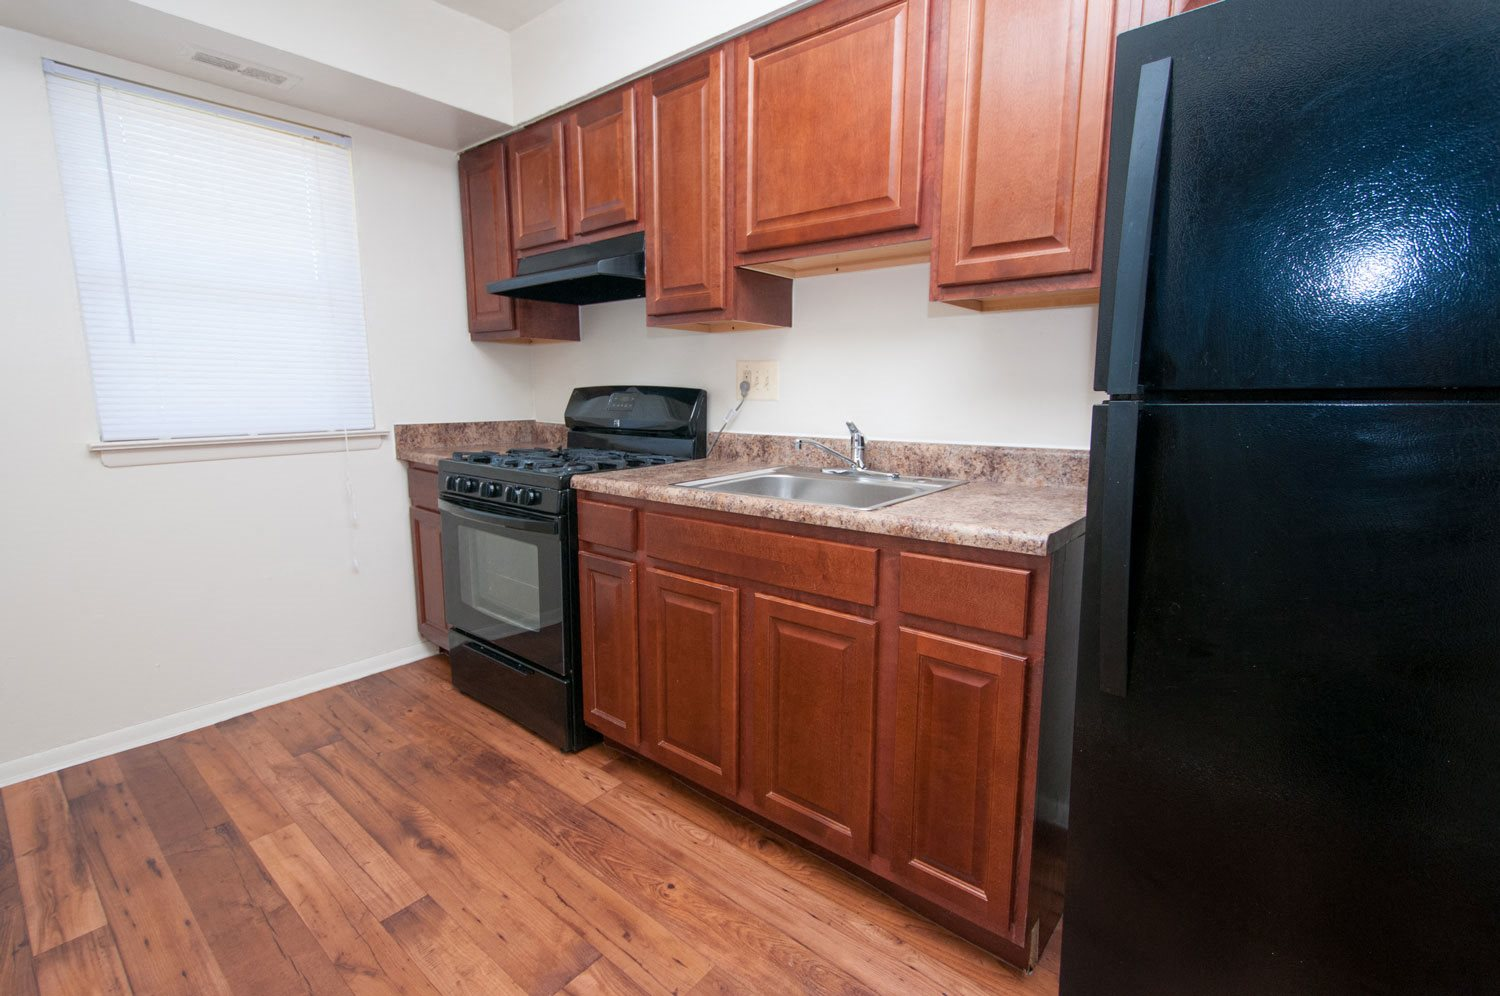 Spacious Kitchen with Pantry Cabinet at Northwood Ridge Apartments and Townhomes, Baltimore, MD